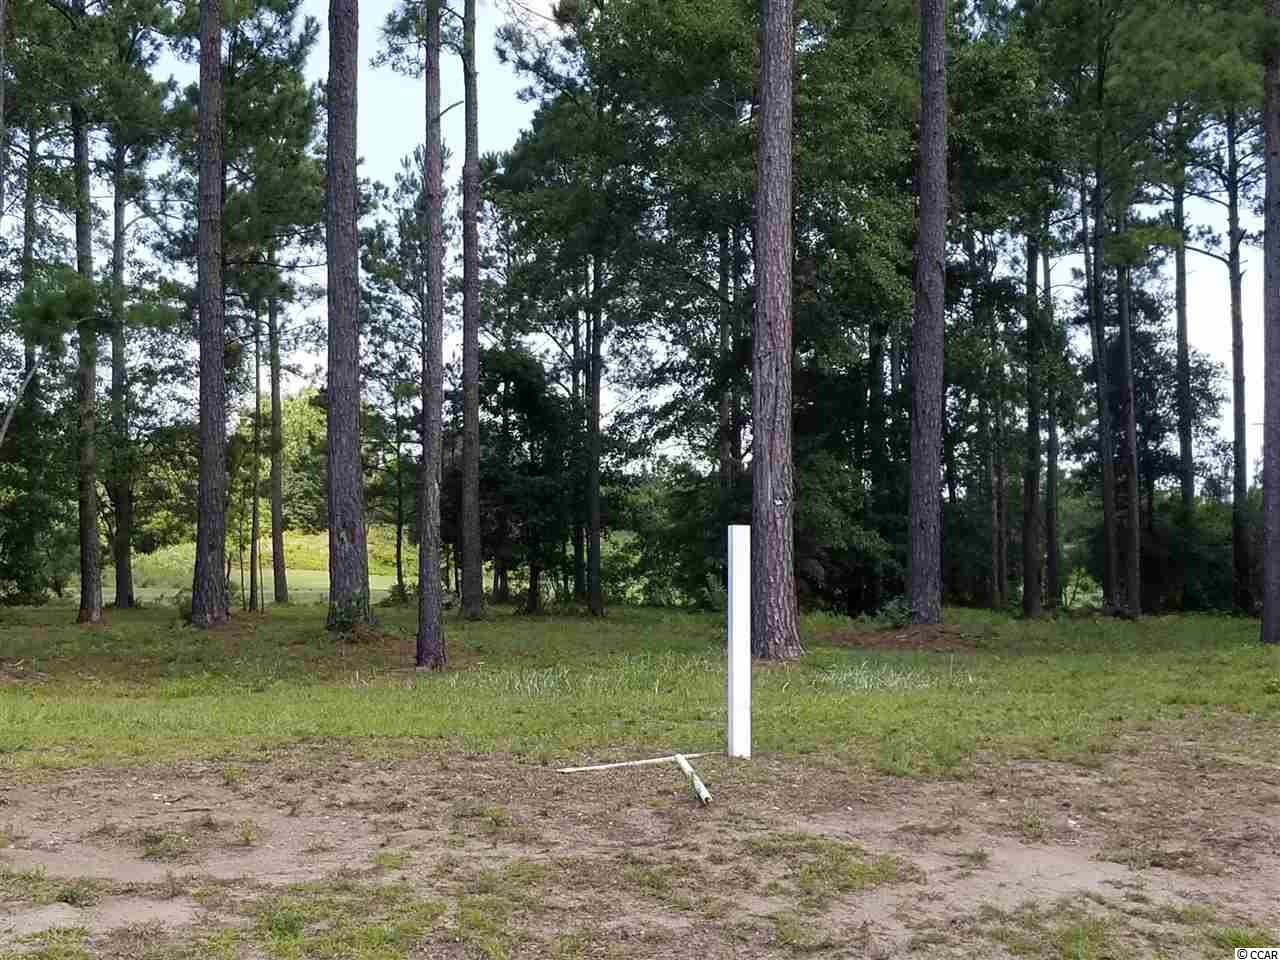 Beautiful .5 acre home site with amazing views of the green and fairway on the first hole on the famed Members Course. This tranquil setting is the perfect place to build your dream home. This property is located in South Carolina's premier coastal community in Myrtle Beach; Grande Dunes.  Stretching from the Ocean to the Carolina Bays Preserve, this 2200 acre development is amenity-rich and filled with lifestyle opportunities unrivaled in the market.  Owners at Grande Dunes enjoy a 25,000 square foot Ocean Club that boasts exquisite dining, oceanfront pools with food & beverage service, along with meeting rooms and fun activities.  Additionally, the community has two 18-hole golf courses, including the area's only truly private course designed by Nick Price, along with several on-site restaurants, deep water marina, Har-tru tennis facility and miles or biking/walking trails!  Please visit our sales gallery located in Grande Dunes Marketplace next to Lowes Foods to learn more about this amazing community you can call home.